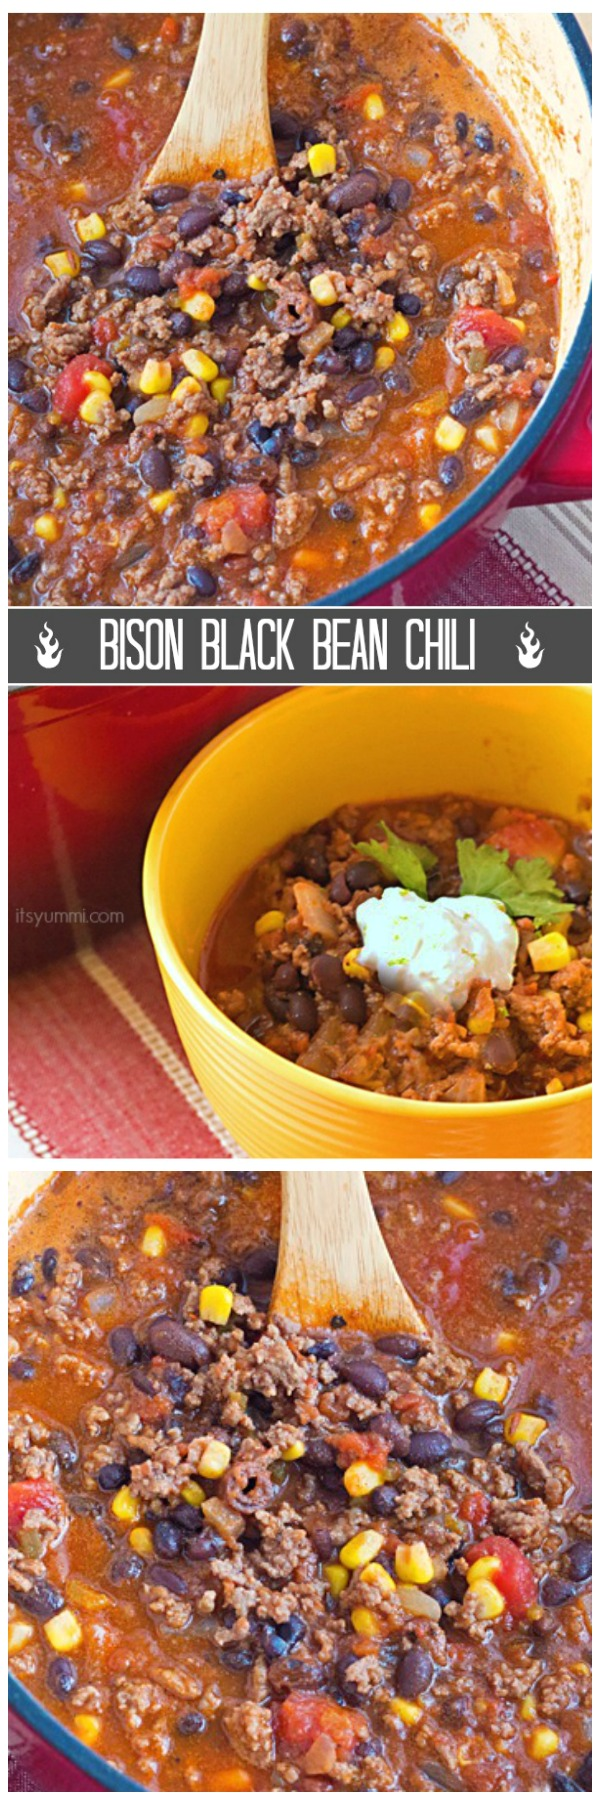 Bison black bean chili recipe - Lean, iron-rich bison, cooked slowly with red wine and layers of spices, bulgur, and fiber-rich black beans.